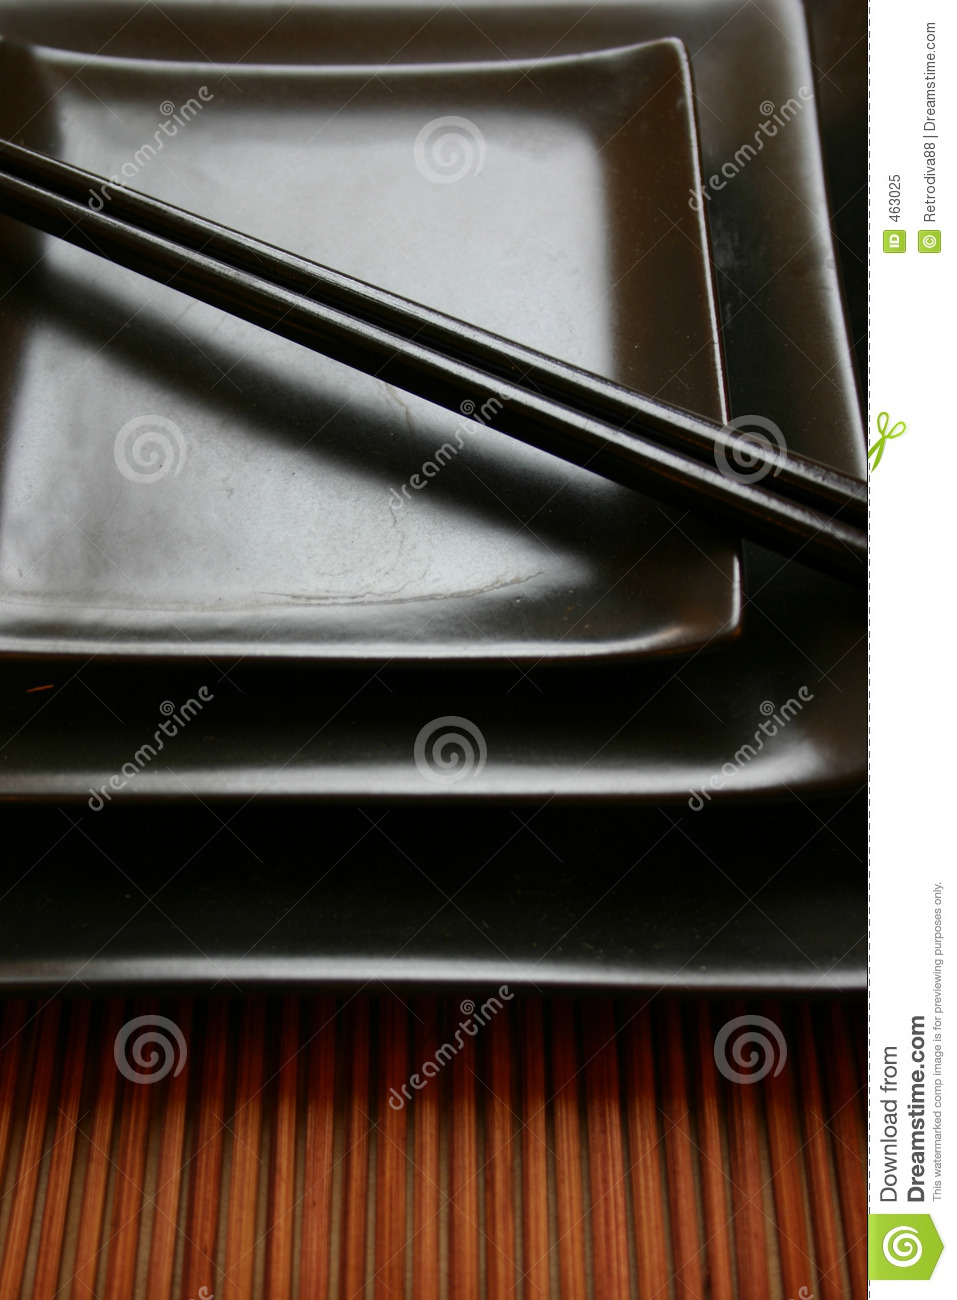 Download Asian Dining Set - Sushi Platters Stock Image - Image of rattan, plate: 463025